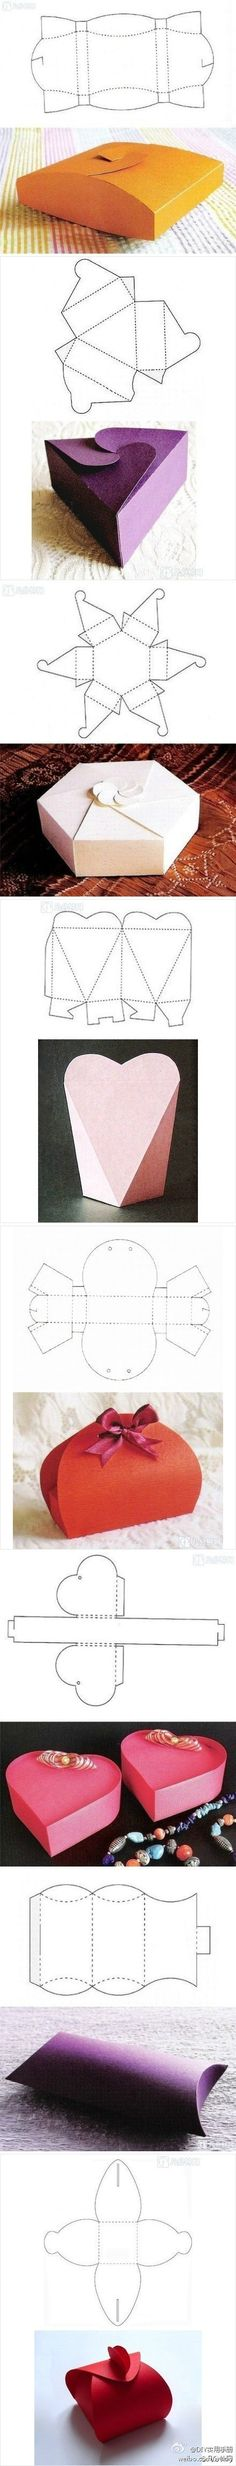 Printable paper box shapes